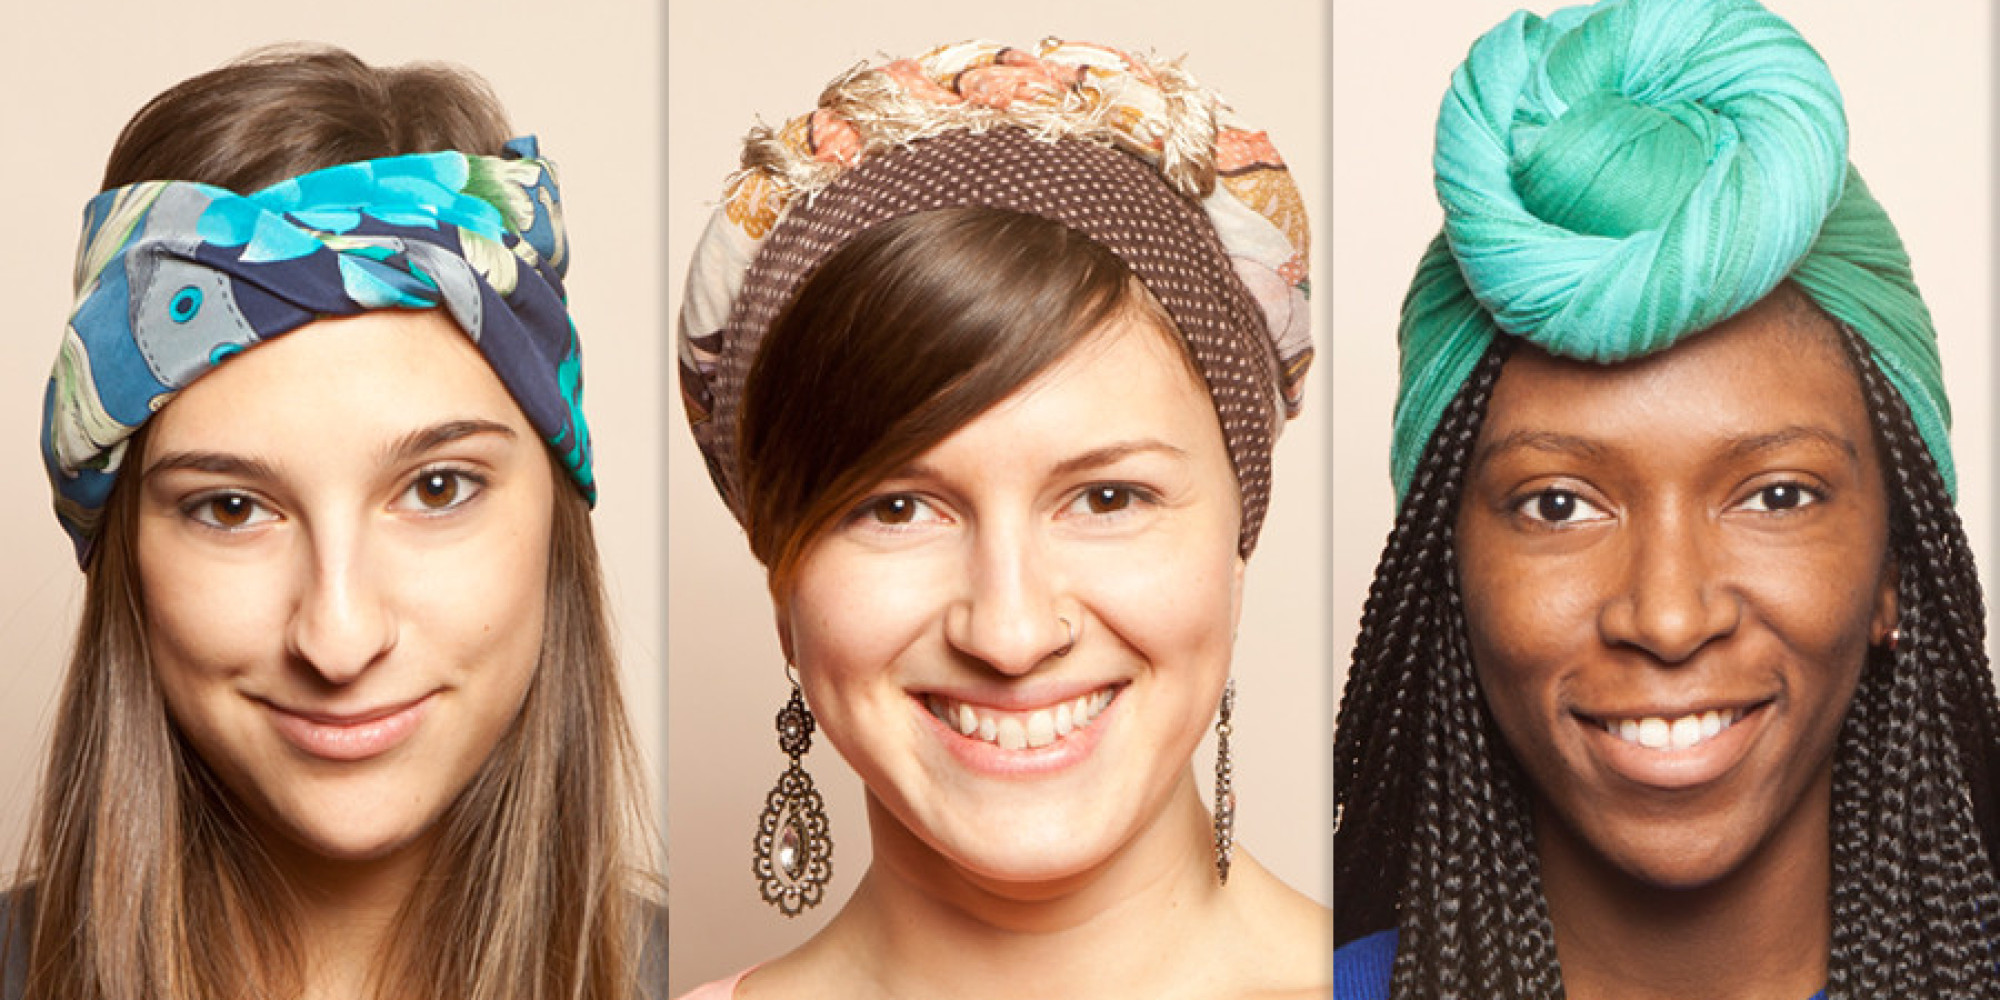 3 Ways To Tie A Head Scarf Explained In GIFs